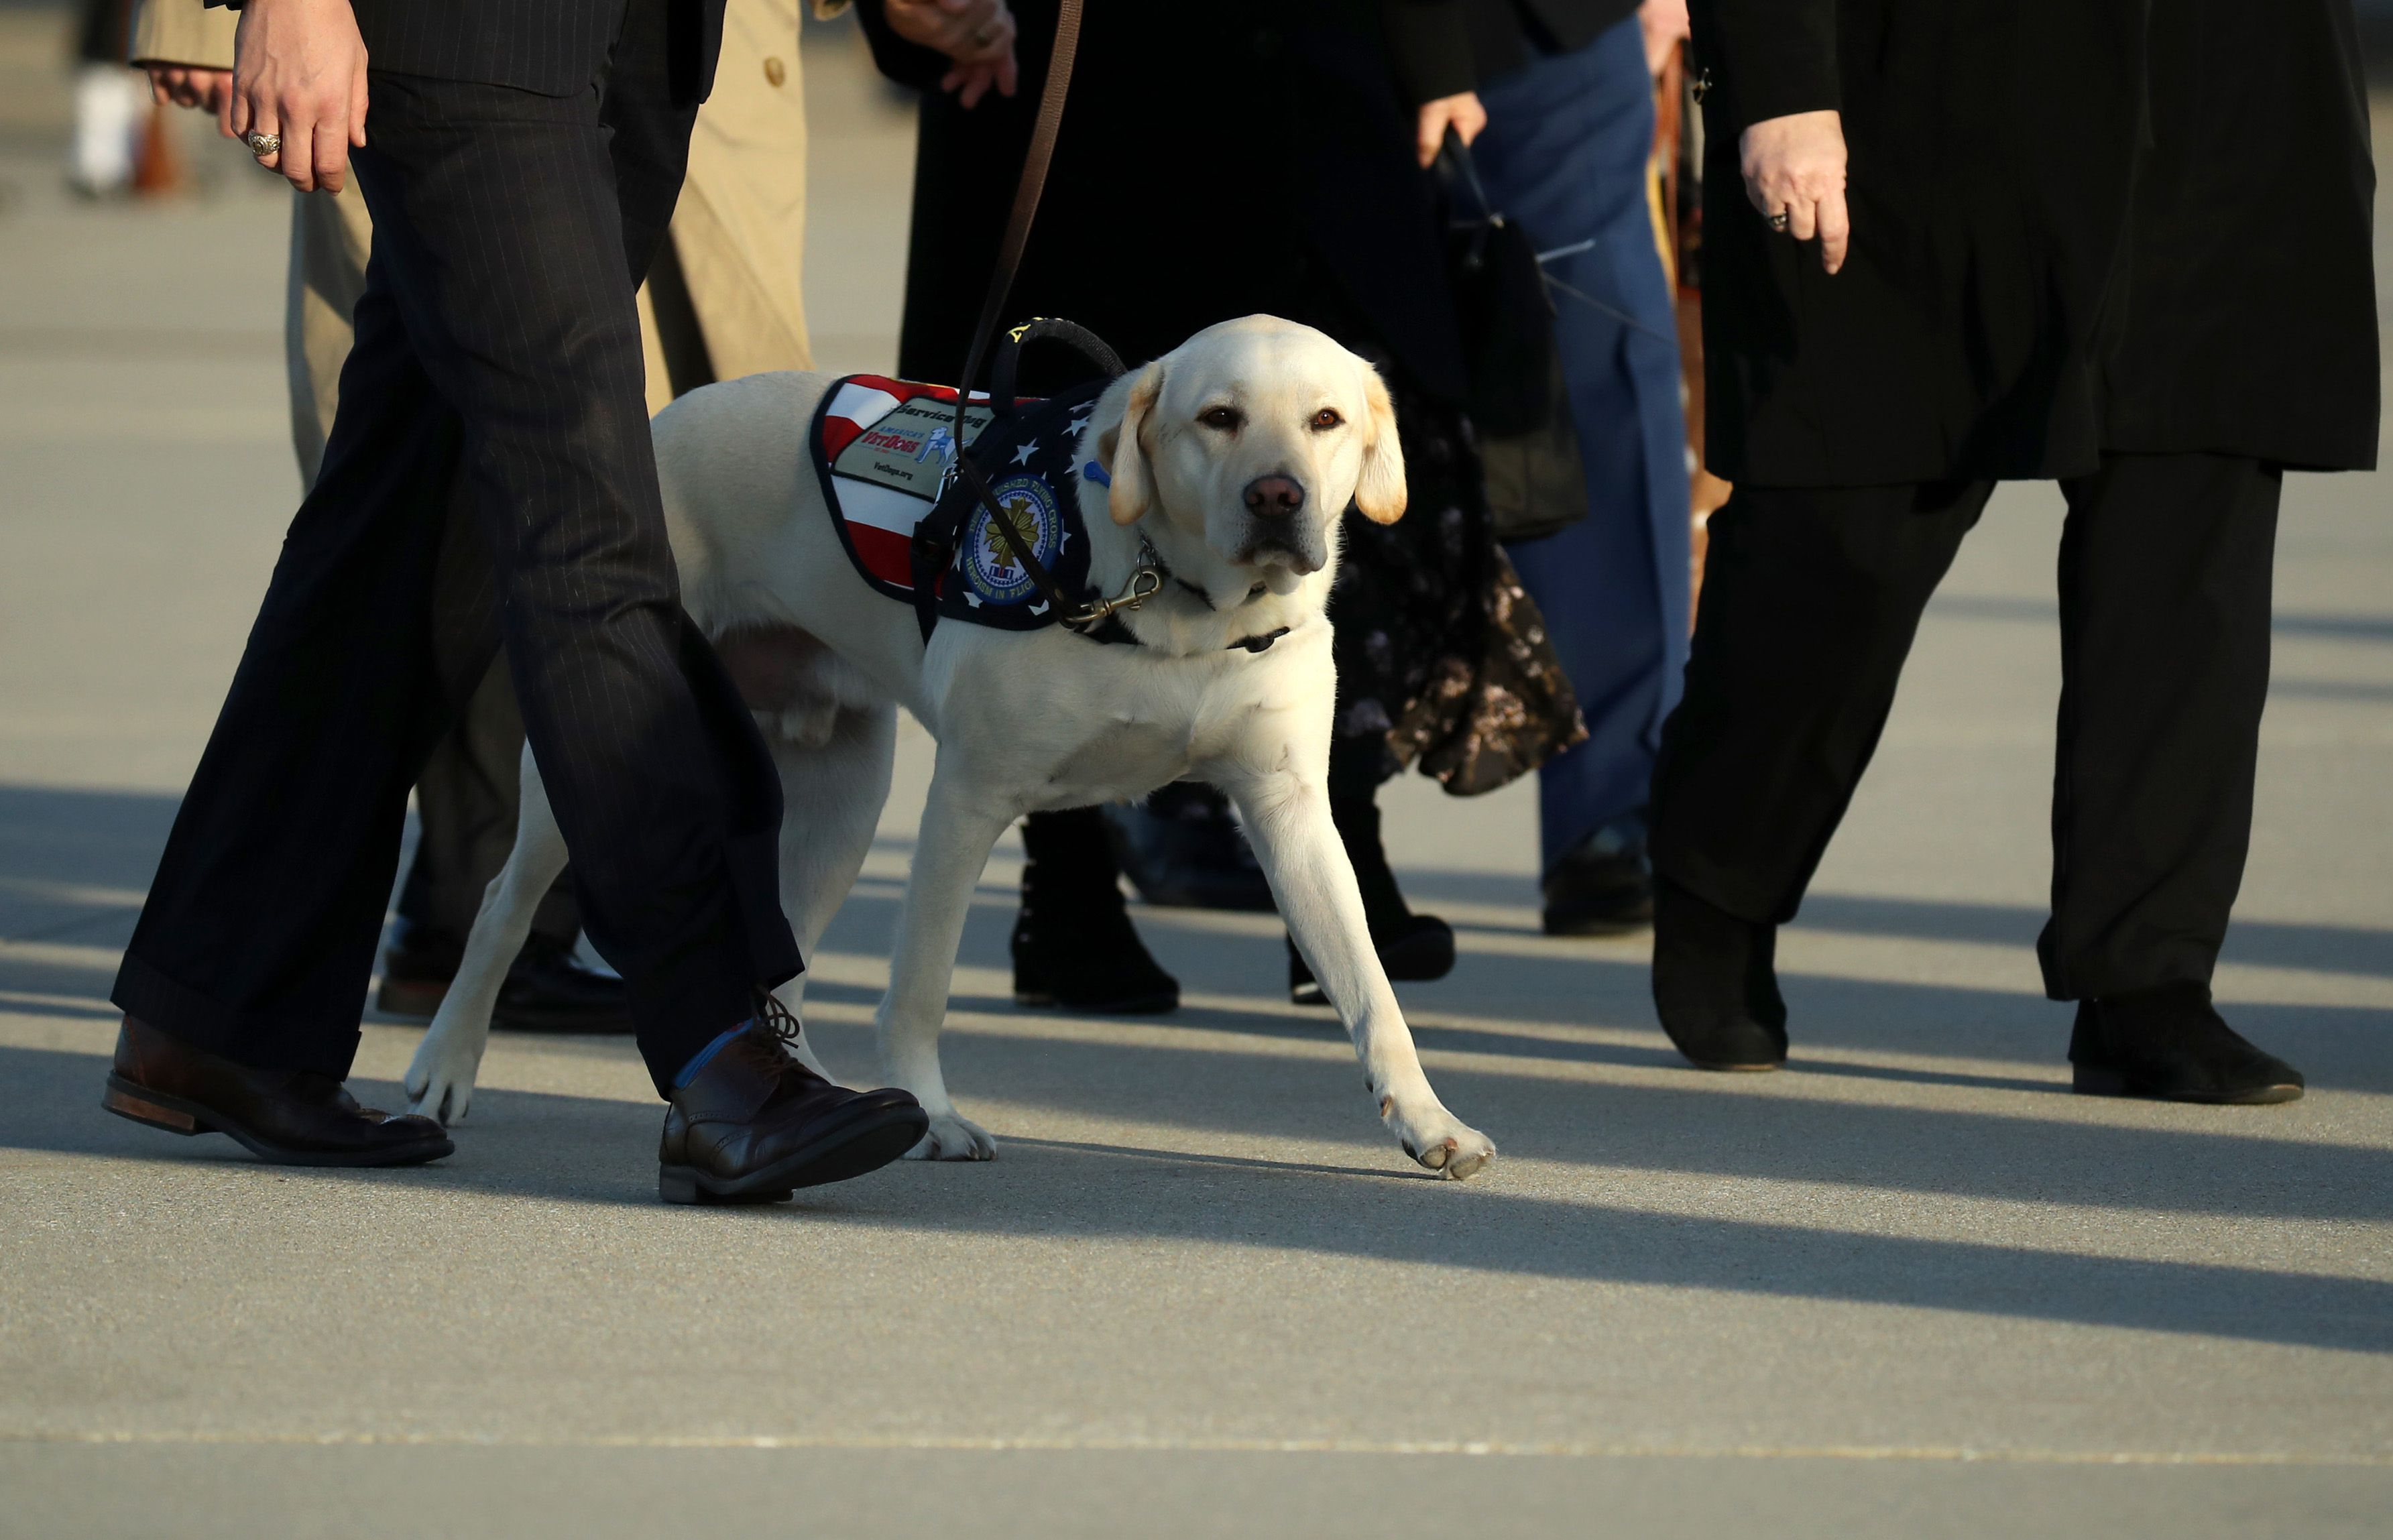 George H. W. Bush's service dog, Sully arriving at Joint Base Andrews.